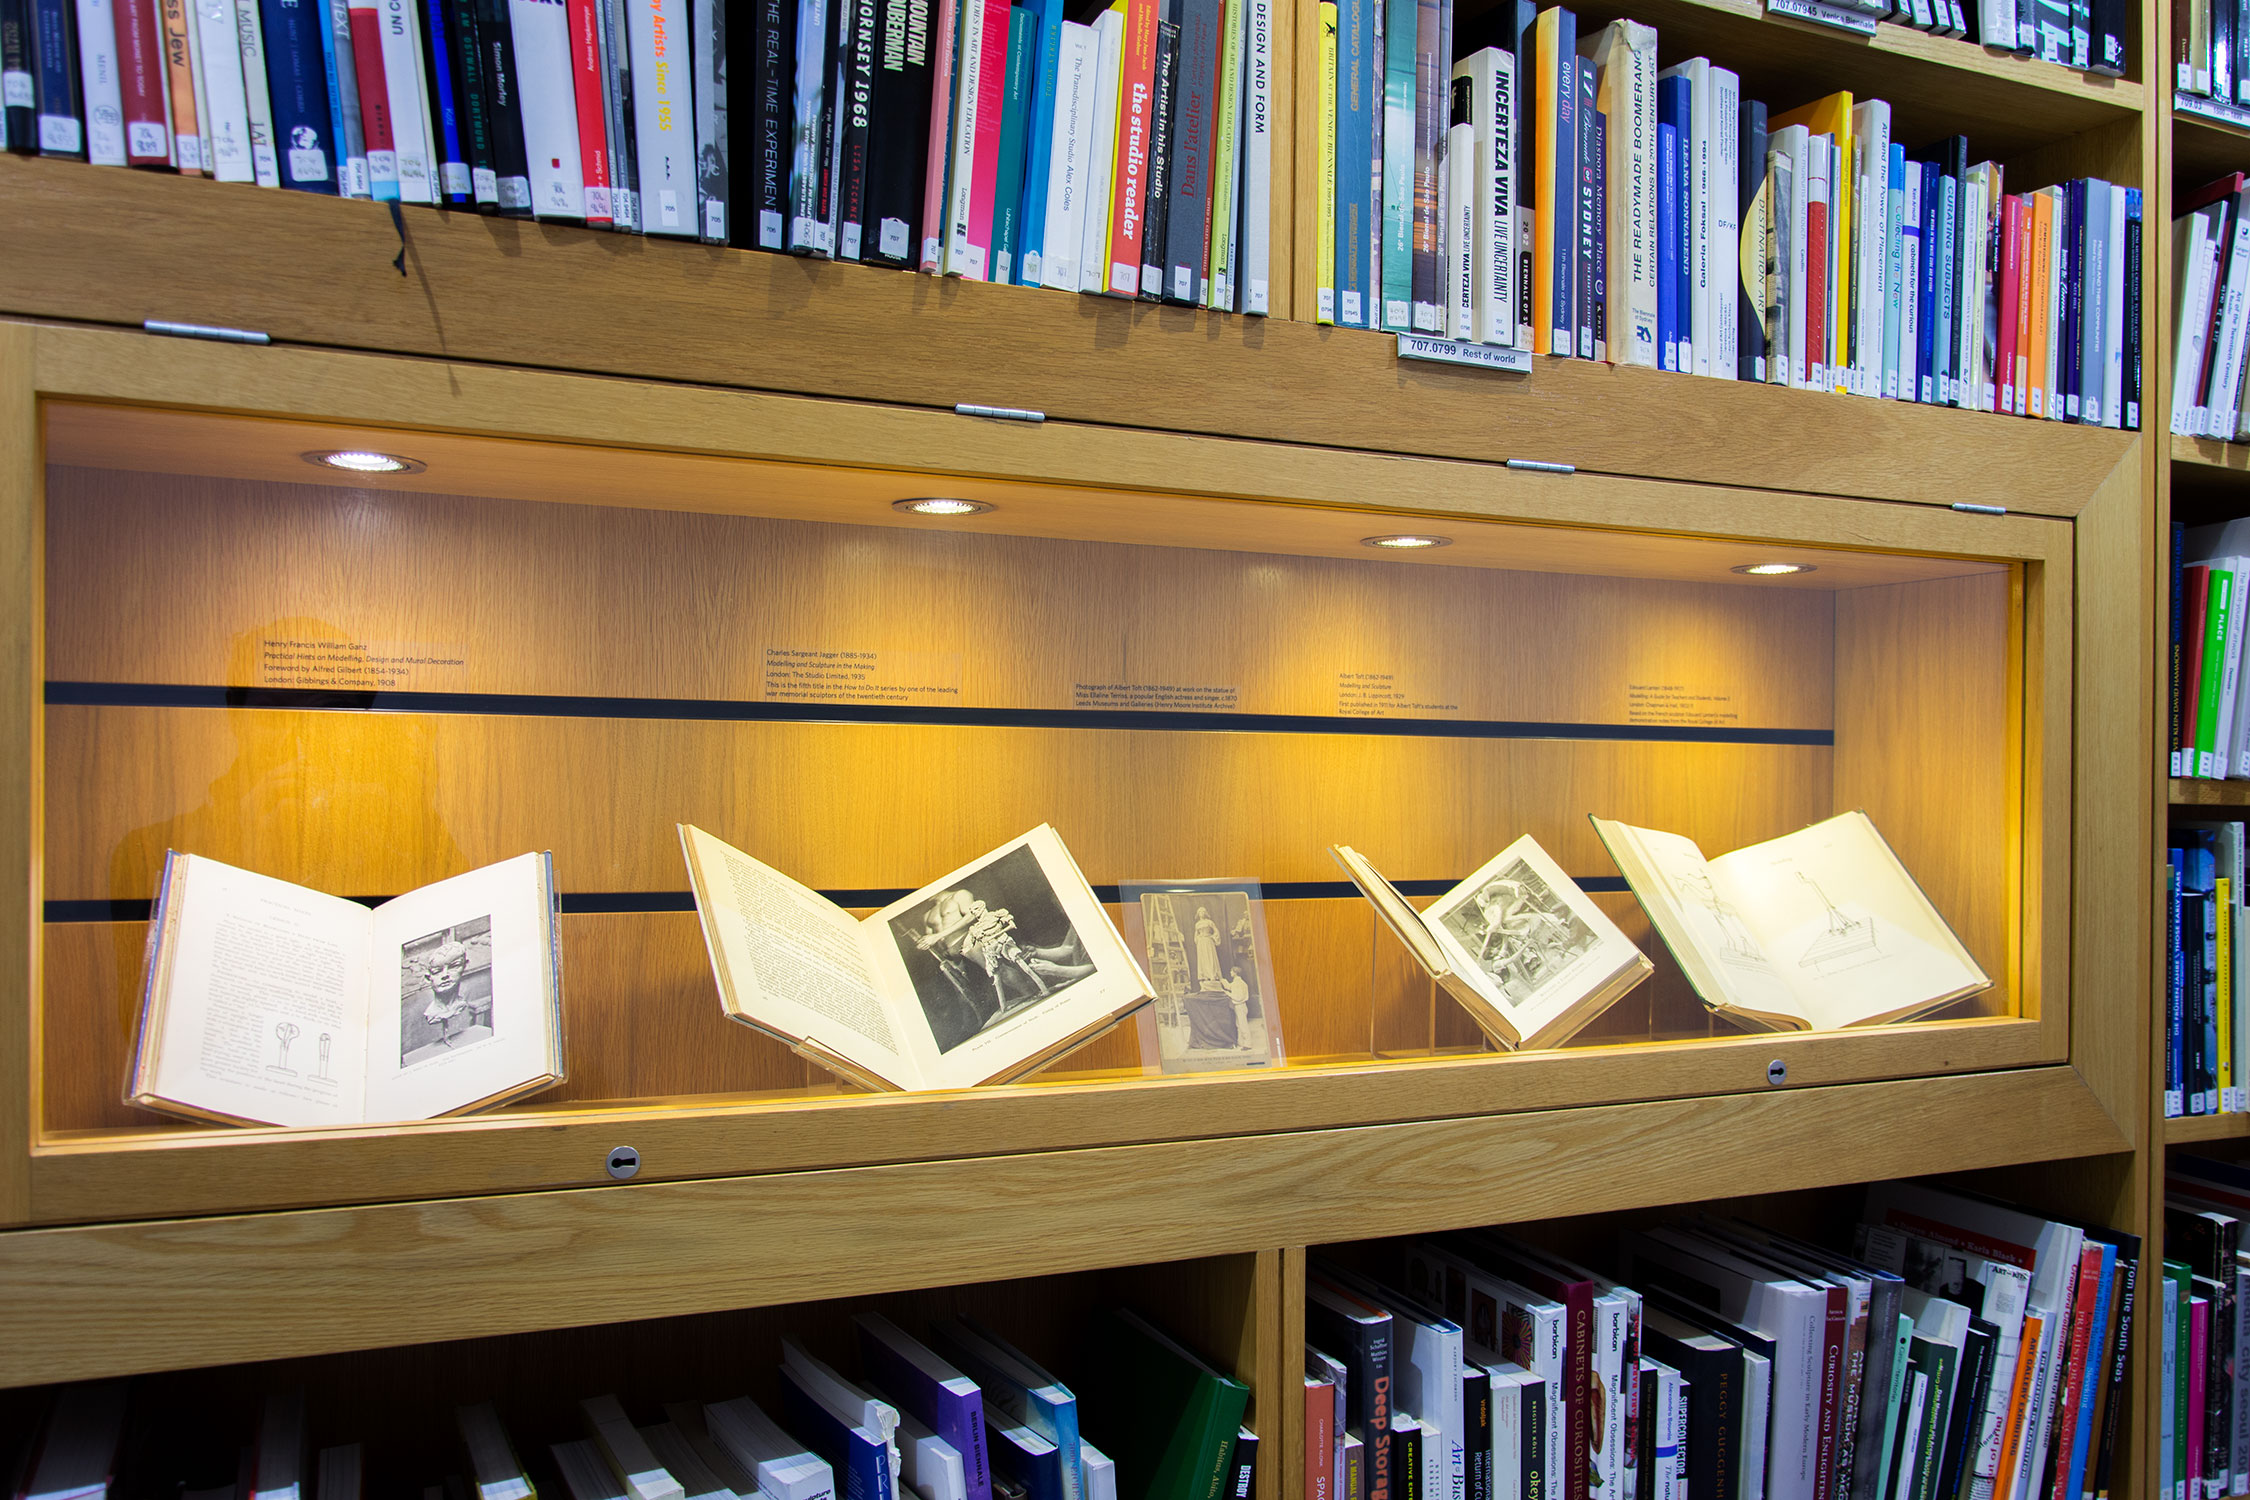 'Modelling Manuals: 1890-1940' library display